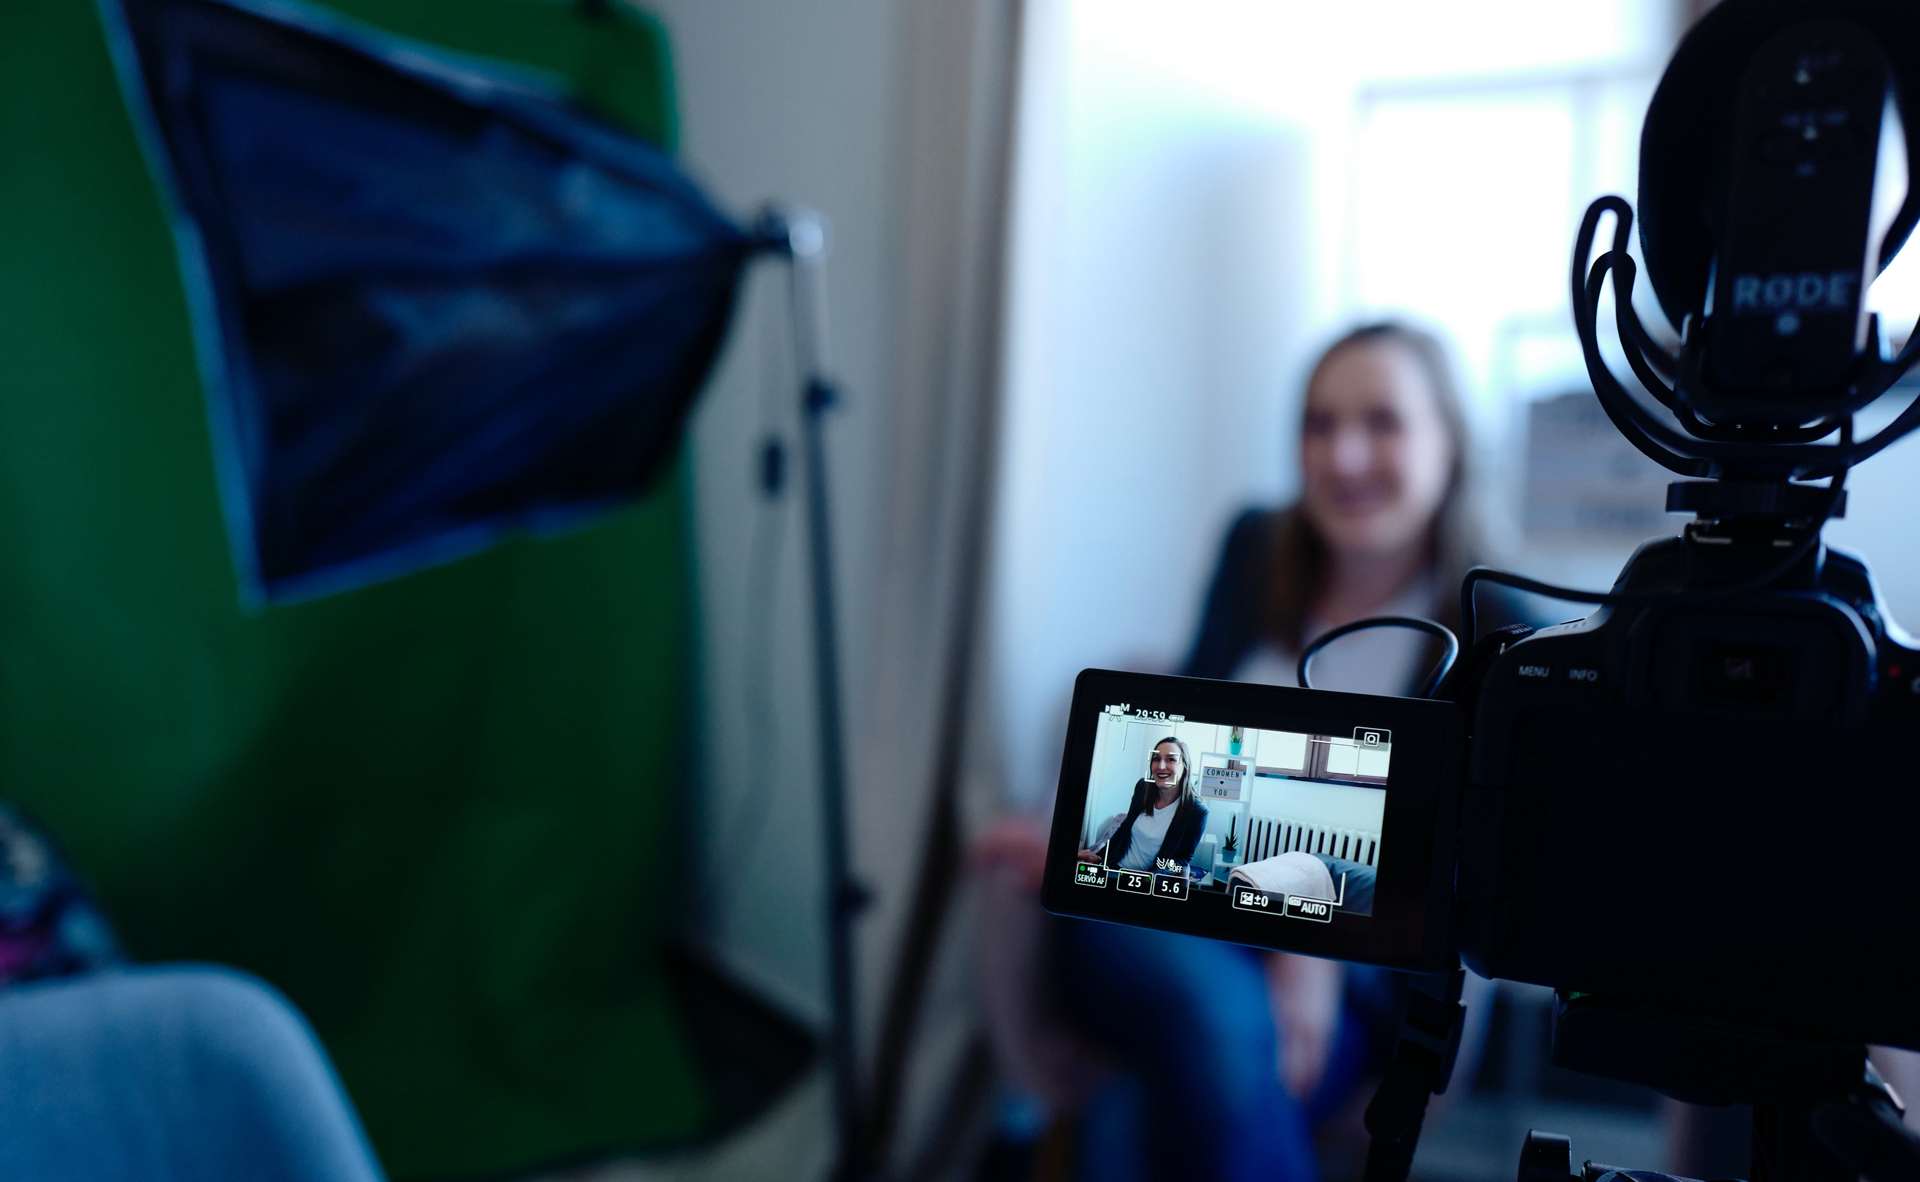 filming an interview on a video camera